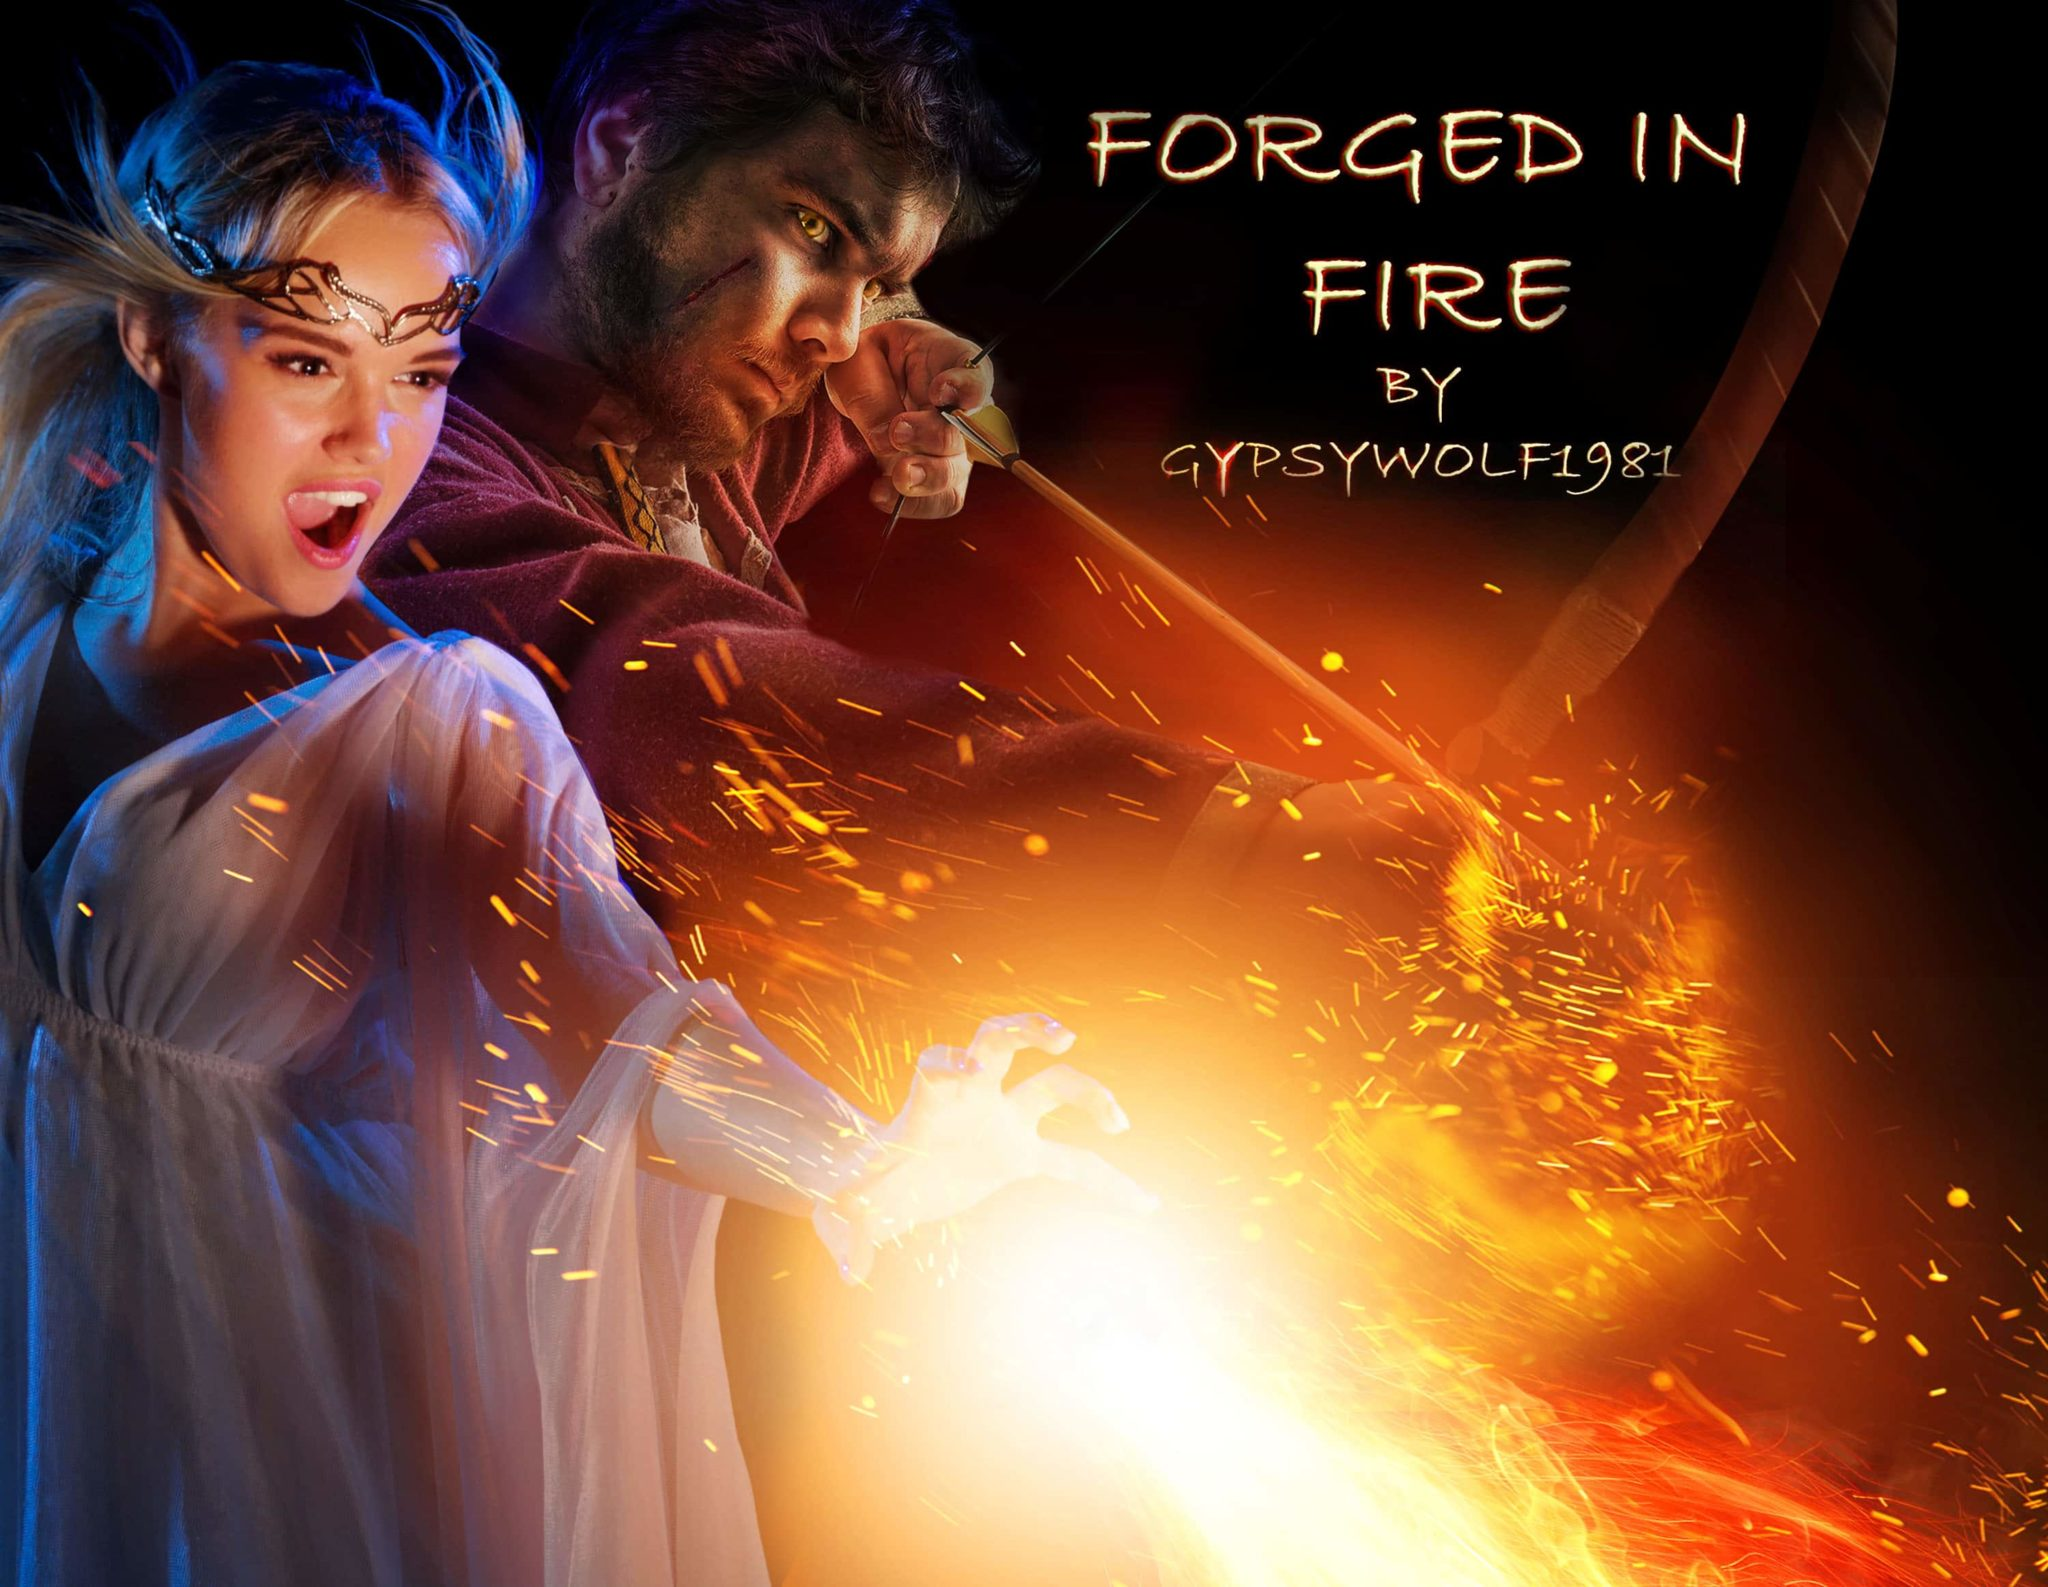 Forged in Fire: Chapter 1- Bishop Romance Story by GypsyWolf